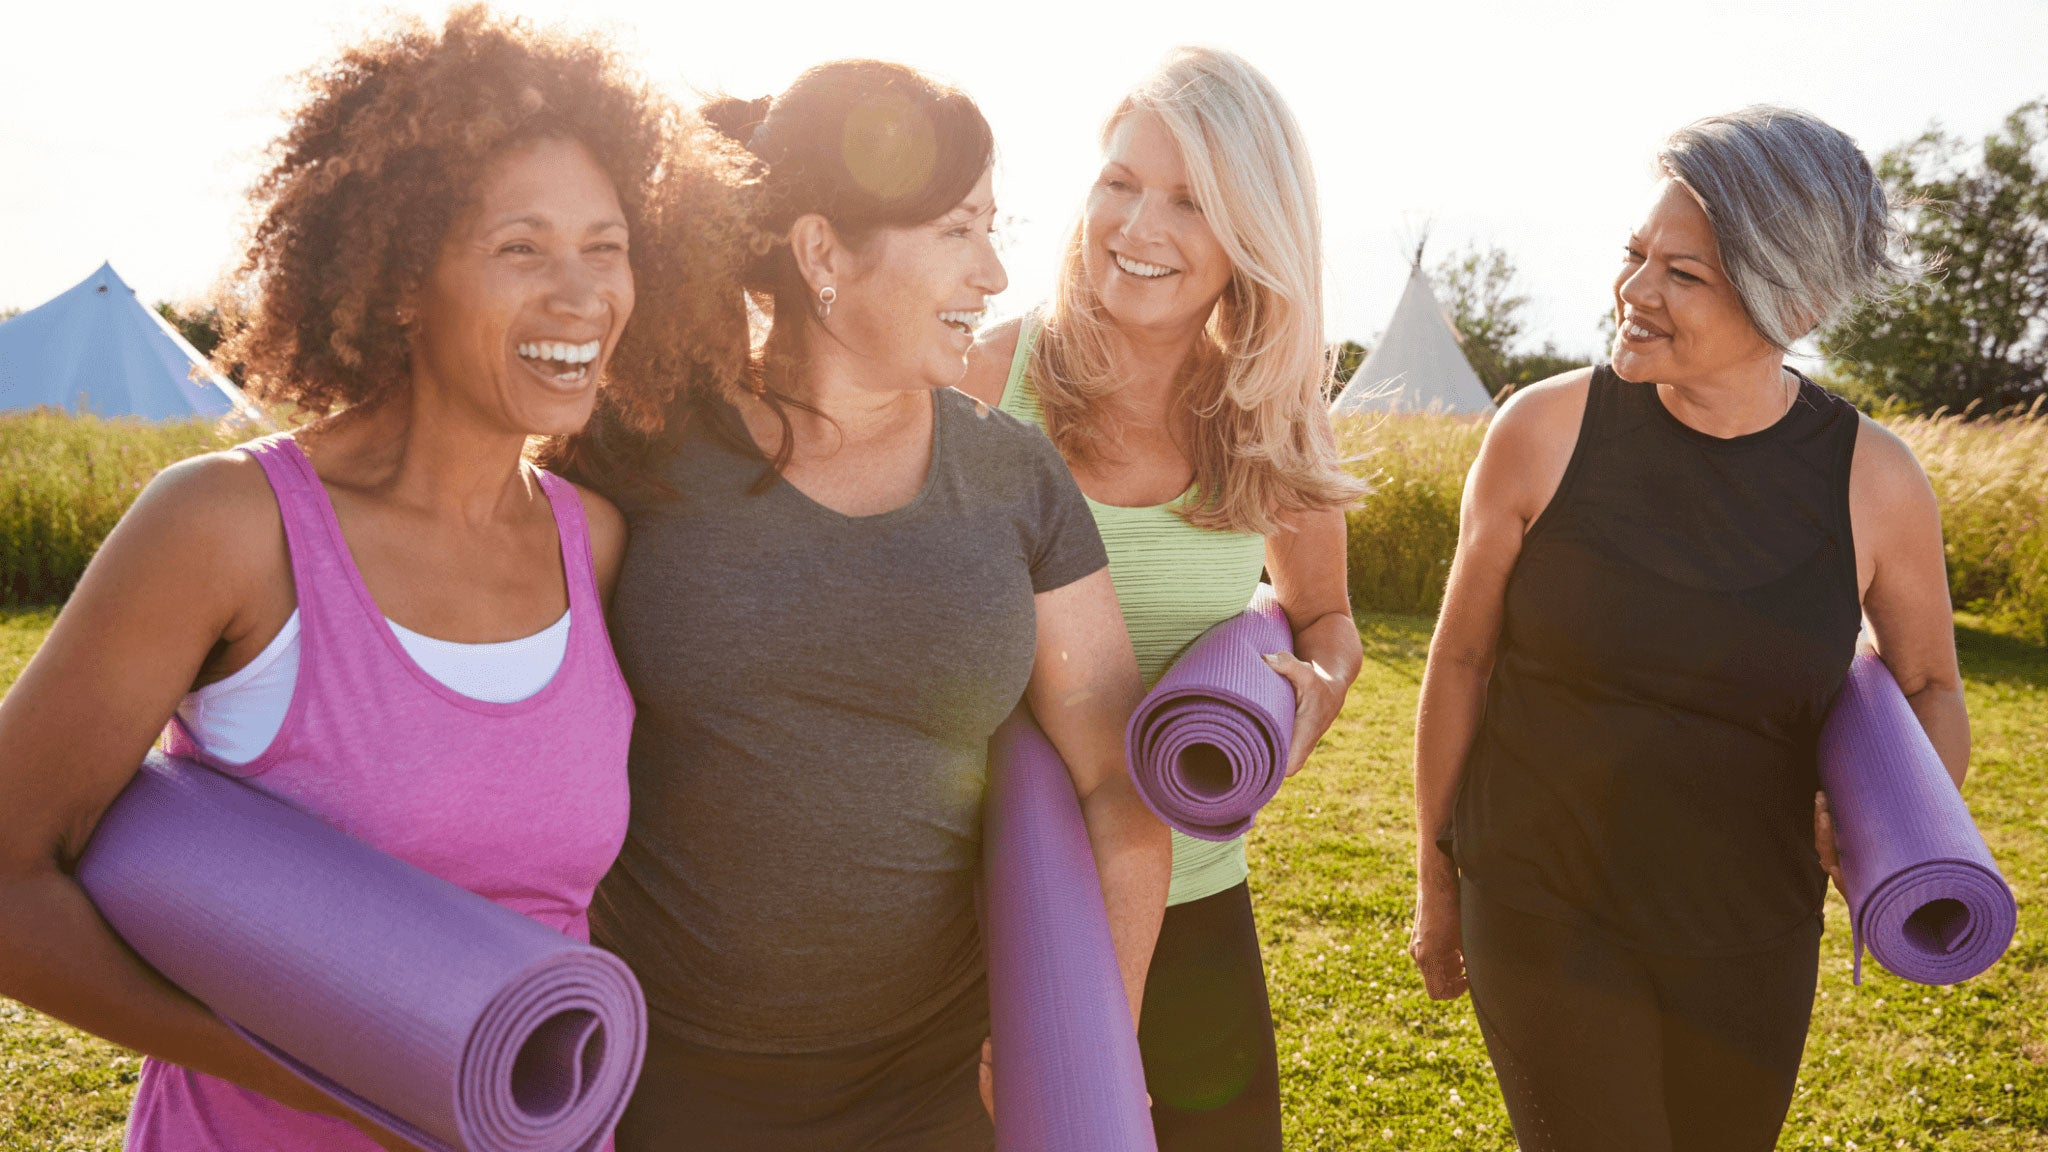 group of happy women outdoors with equipment for doing yoga